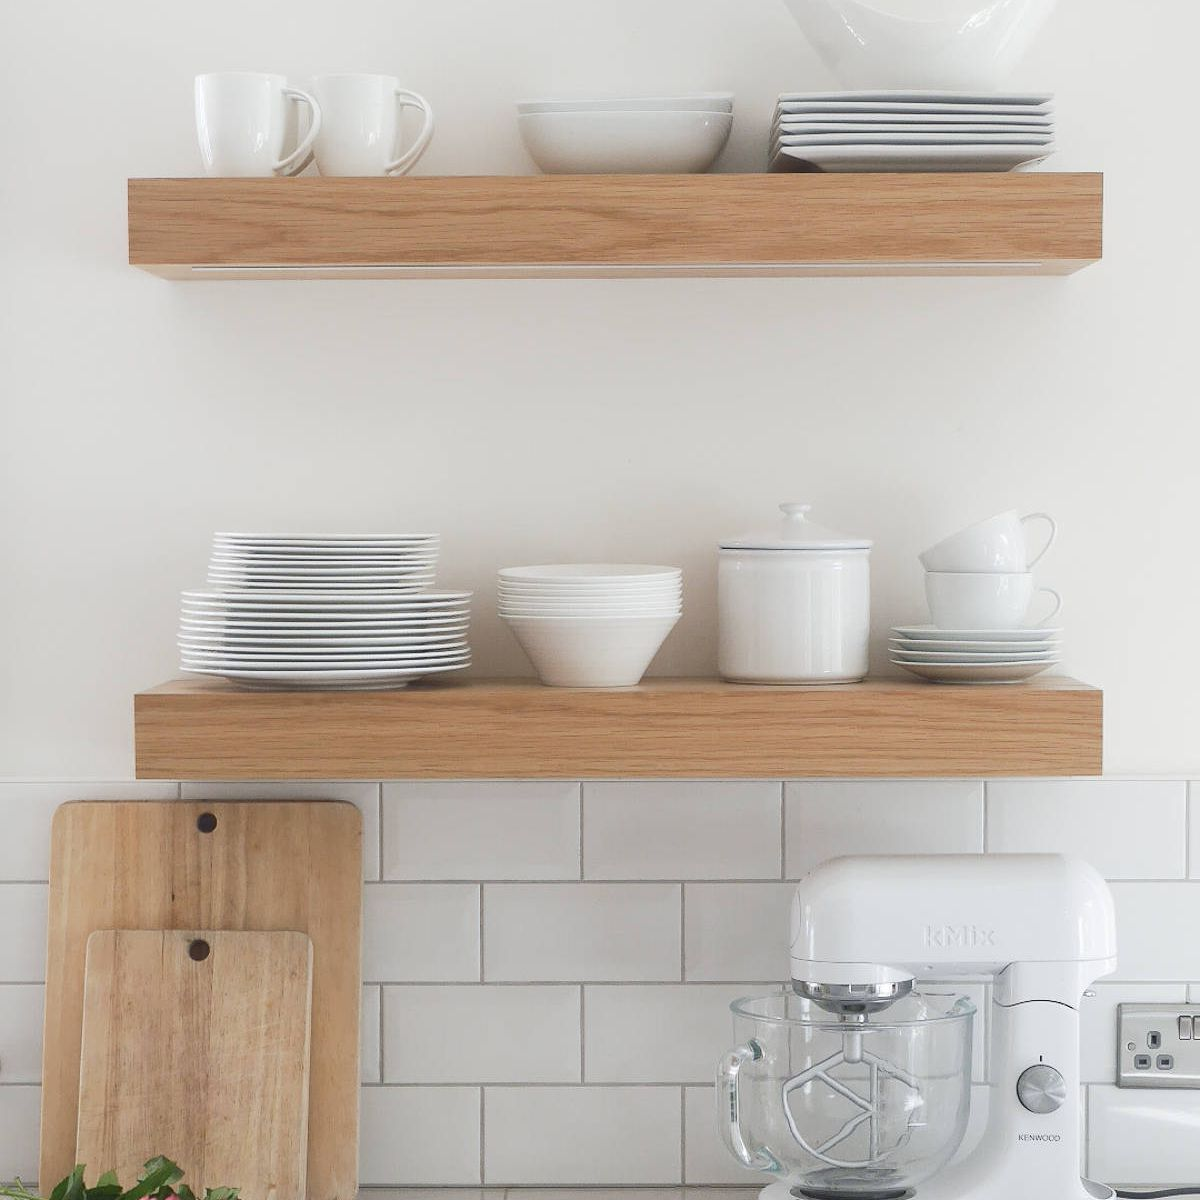 Organized open shelving in a kitchen